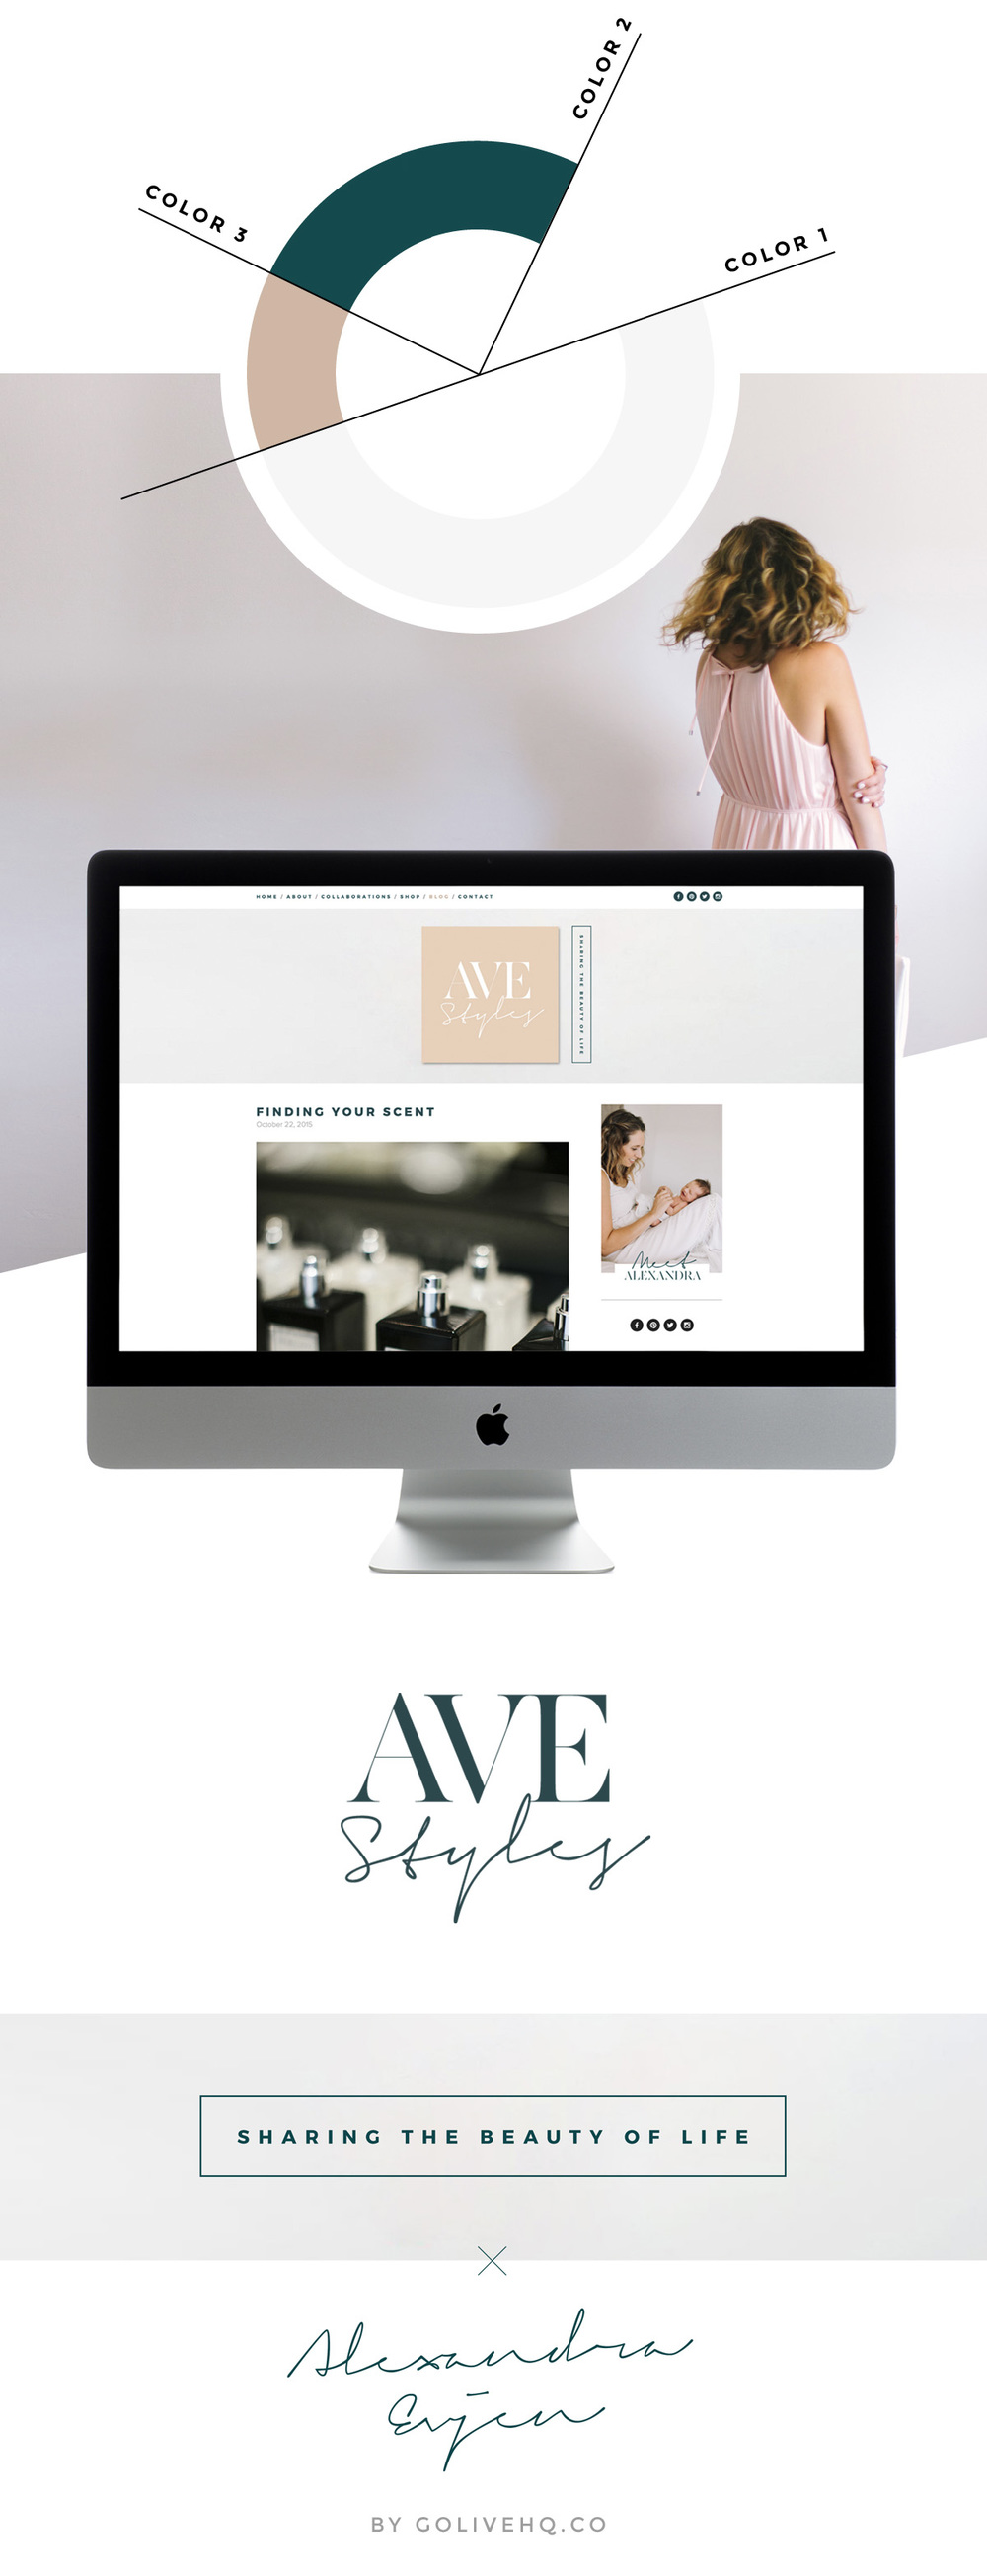 squarespace fashion blog design   |   by GOLIVEHQ.CO